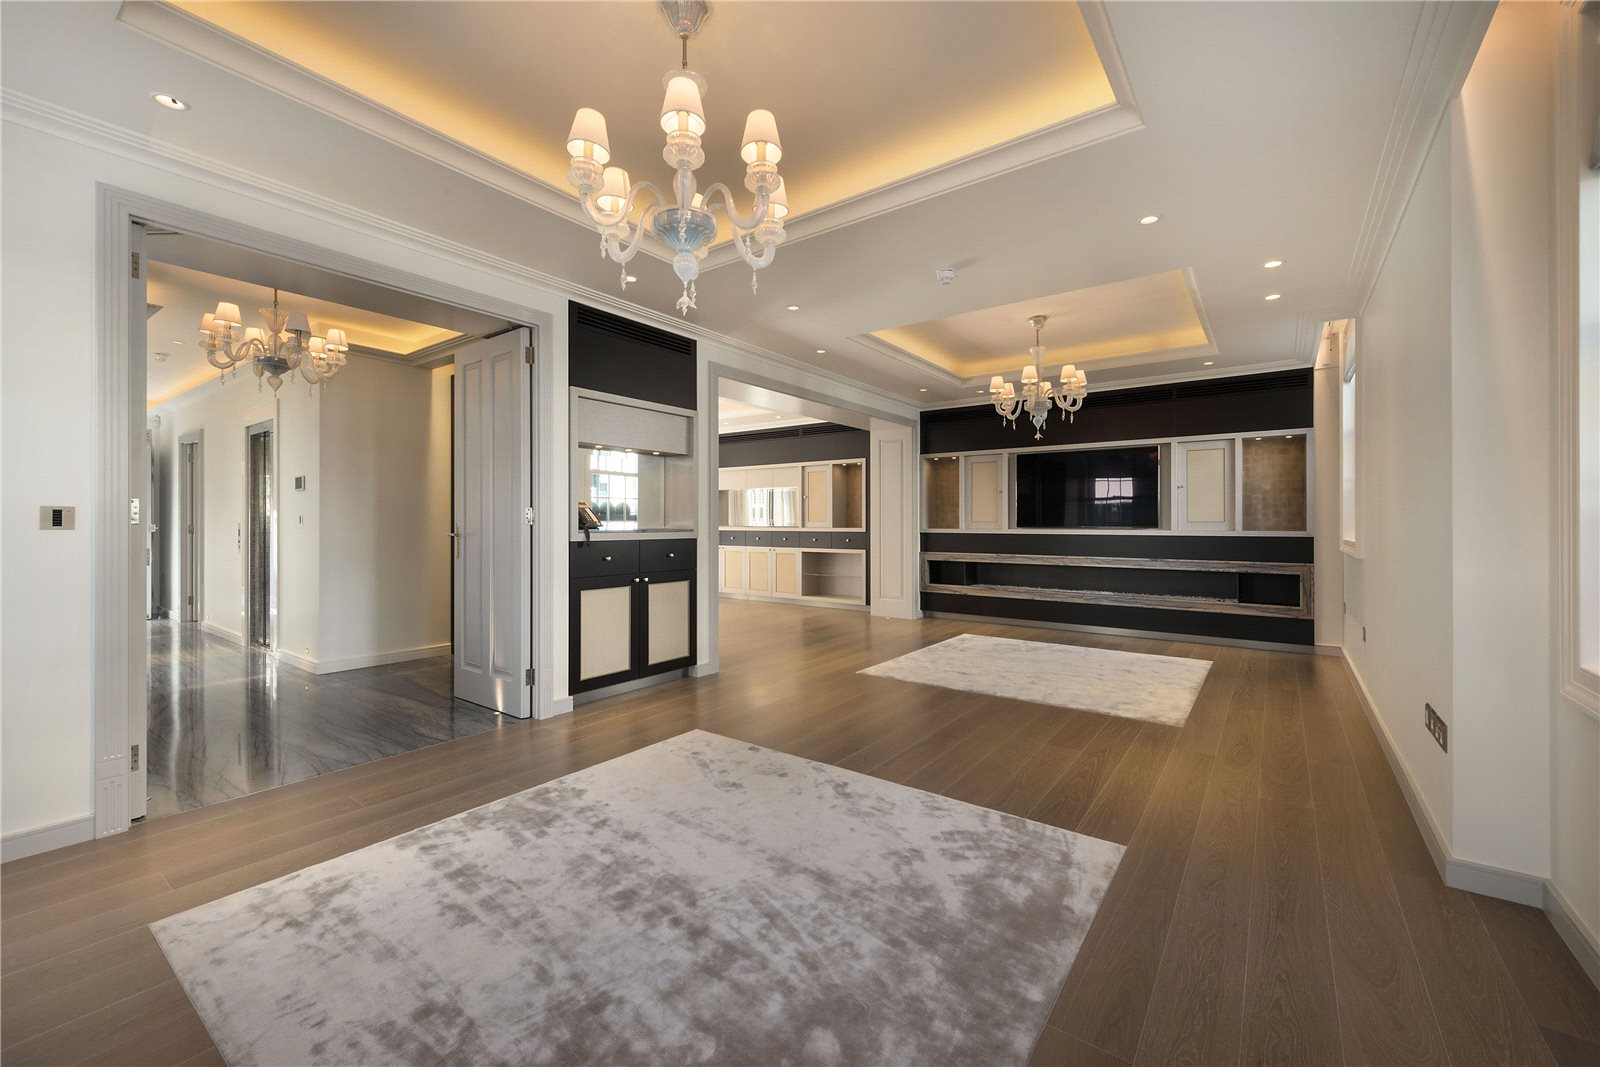 Single Family Home for Sale at Walton Street, London, SW3 London, England